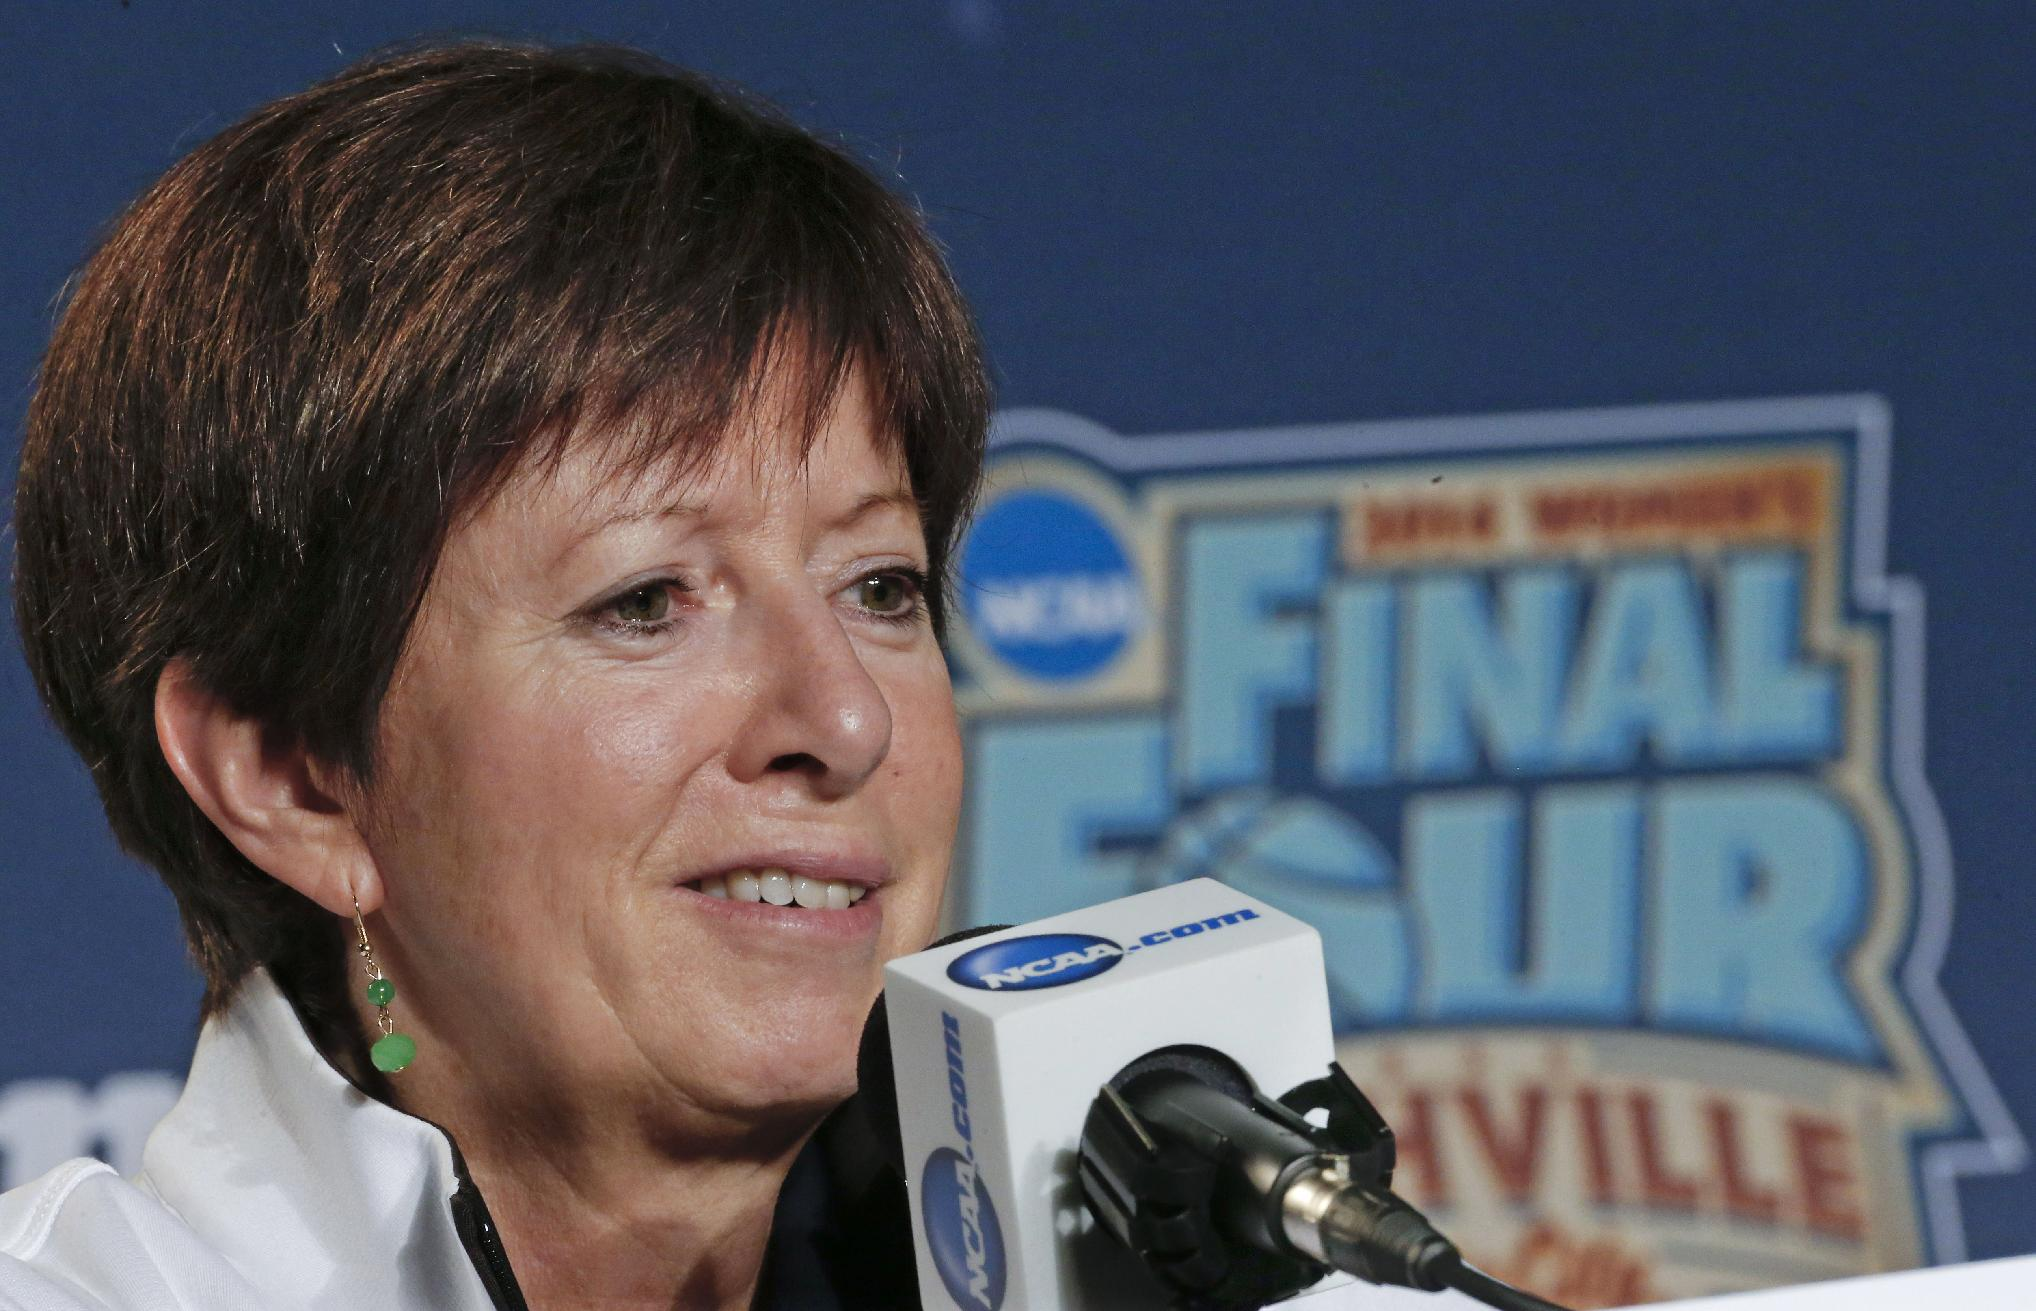 Notre Dame head coach Muffet McGraw answers questions during a news conference at the NCAA women's Final Four college basketball tournament Monday, April 7, 2014, in Nashville, Tenn. Notre Dame is scheduled to face Connecticut in the championship game Tuesday